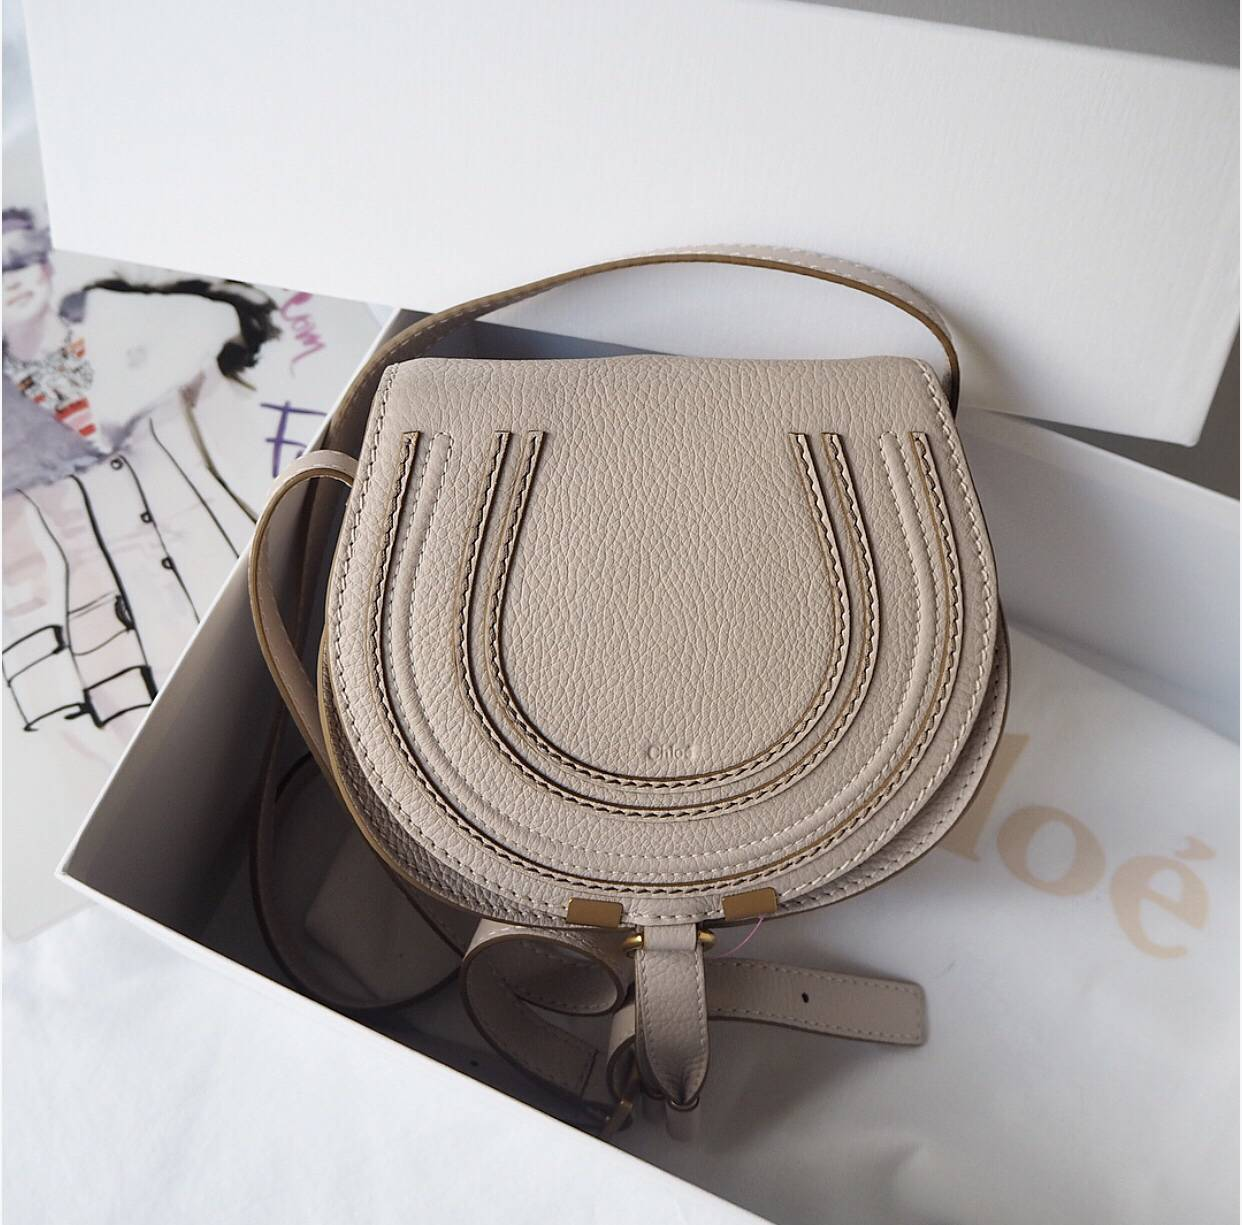 85b714d3374c Introducing the Chloe Mini Marcie Handbag